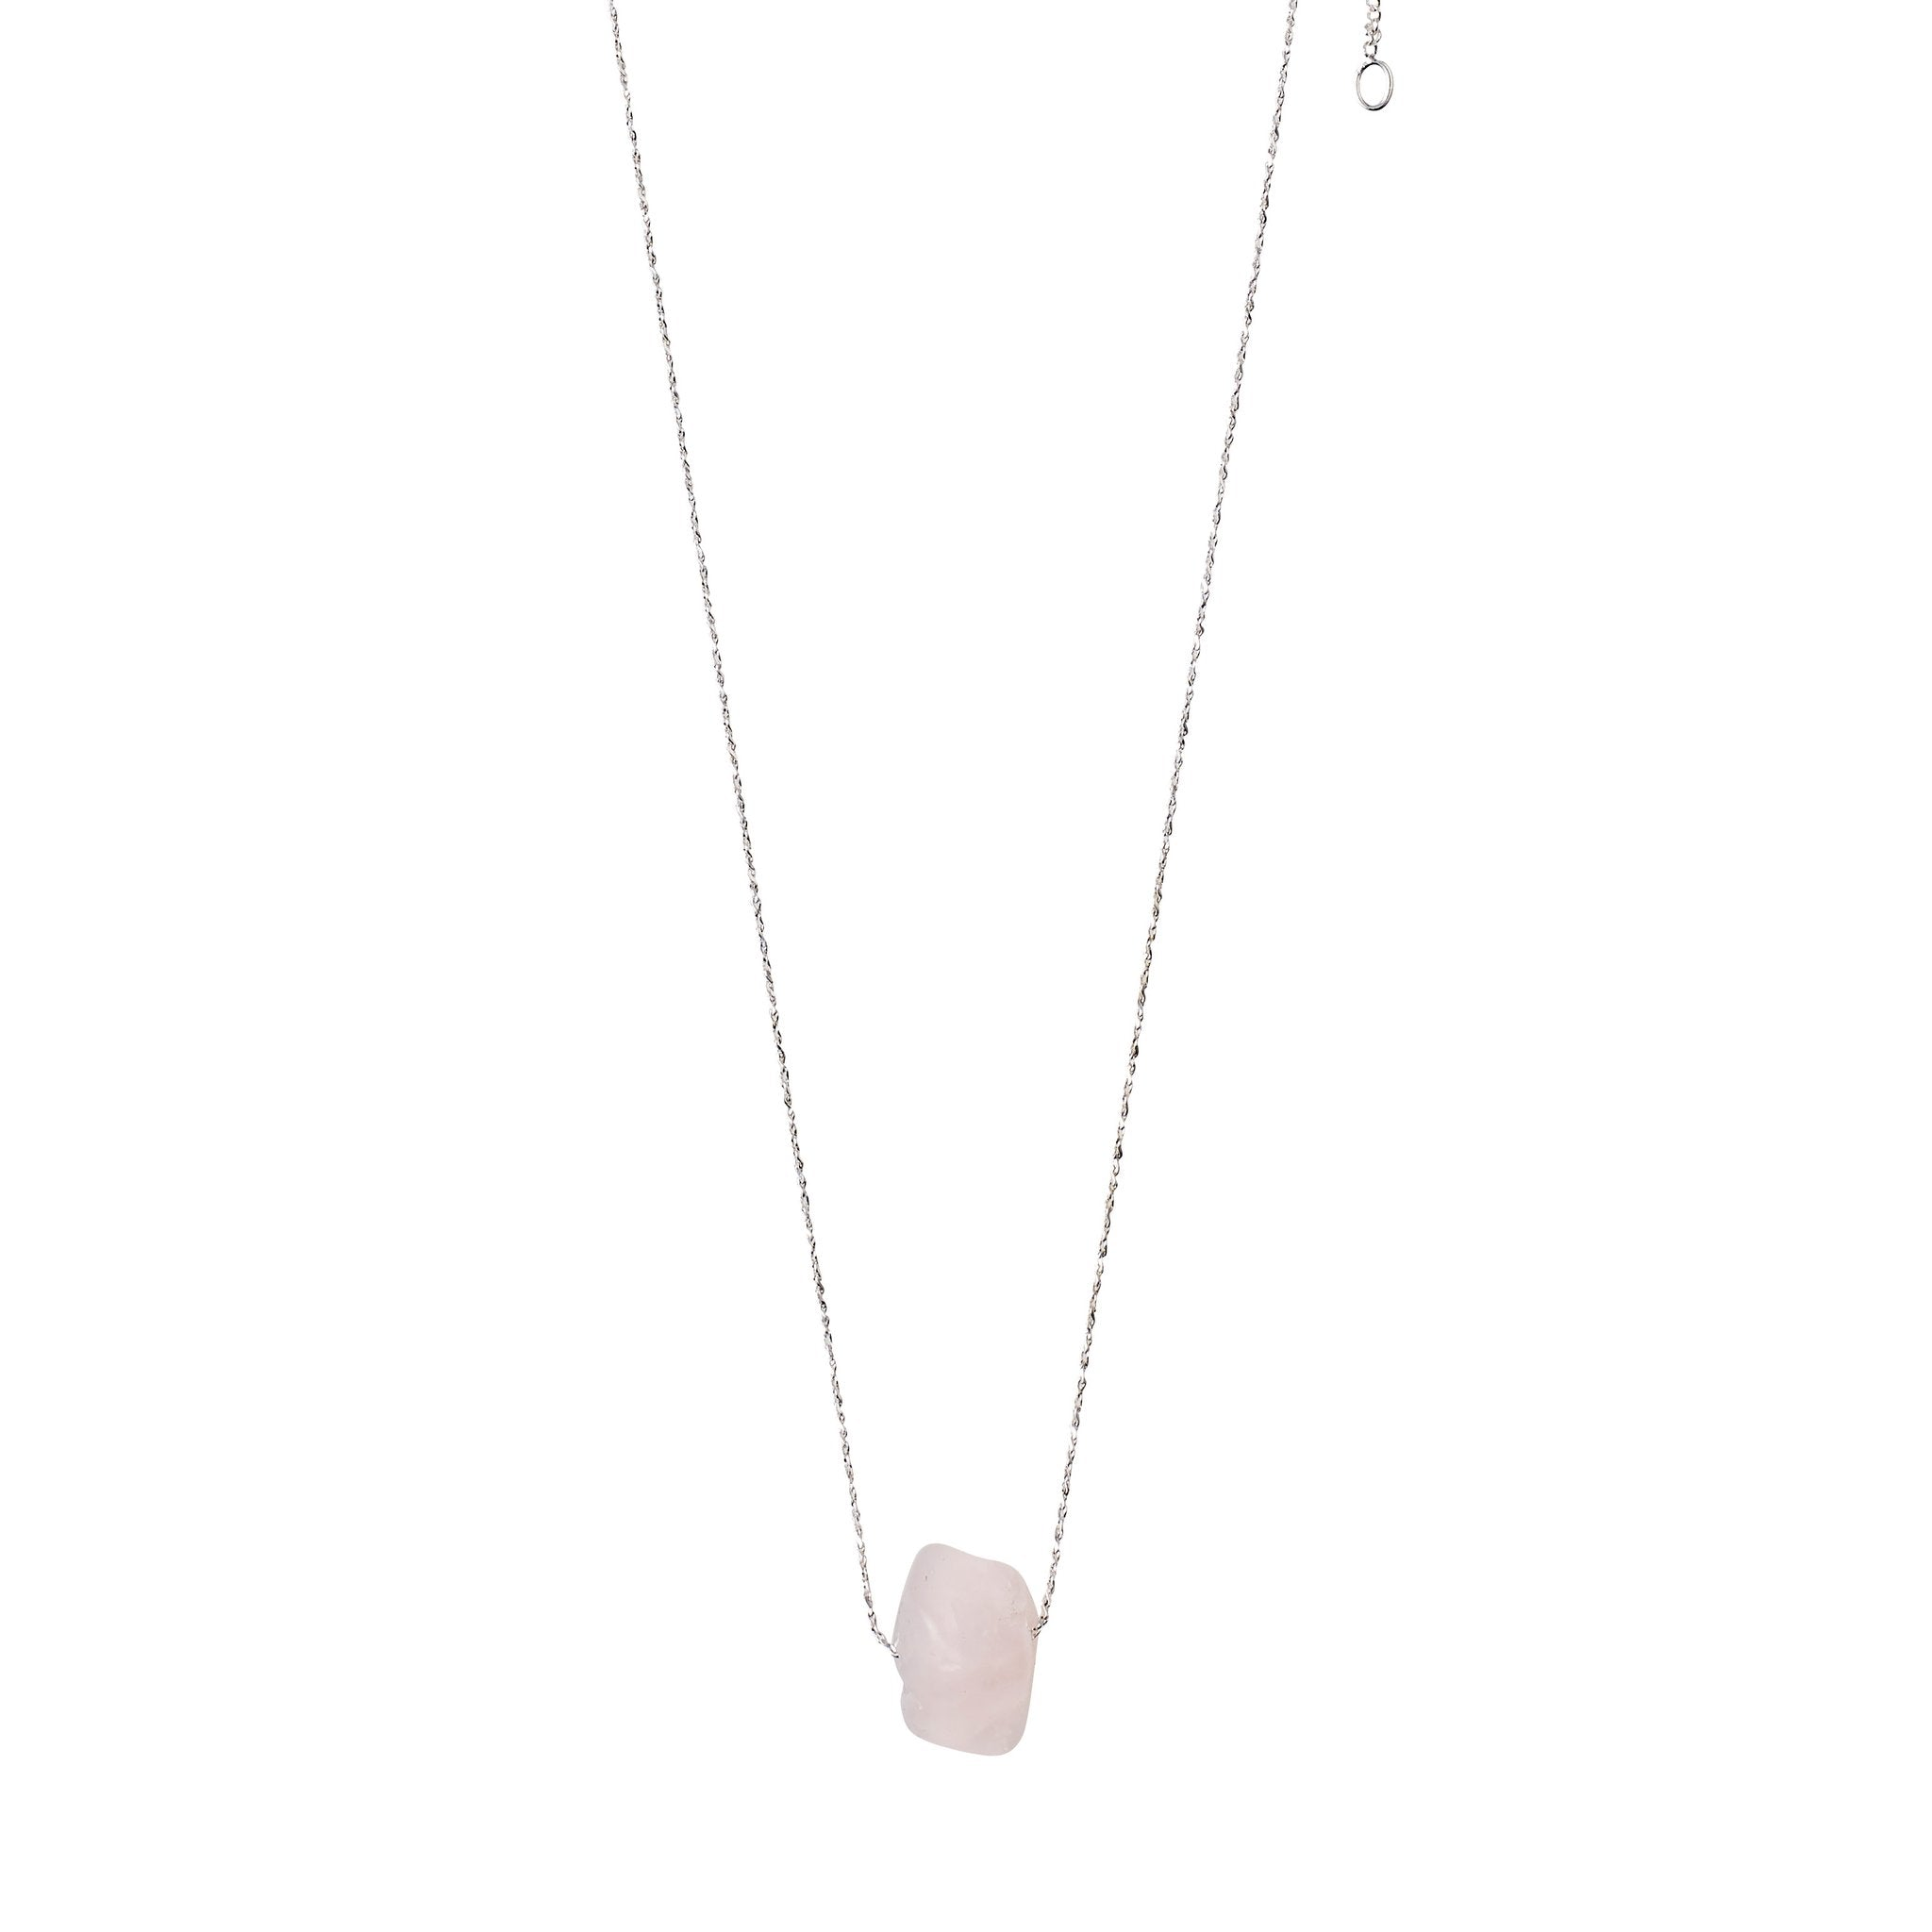 Chakra Necklace - Silver Plated - Heart - Rose Quartz